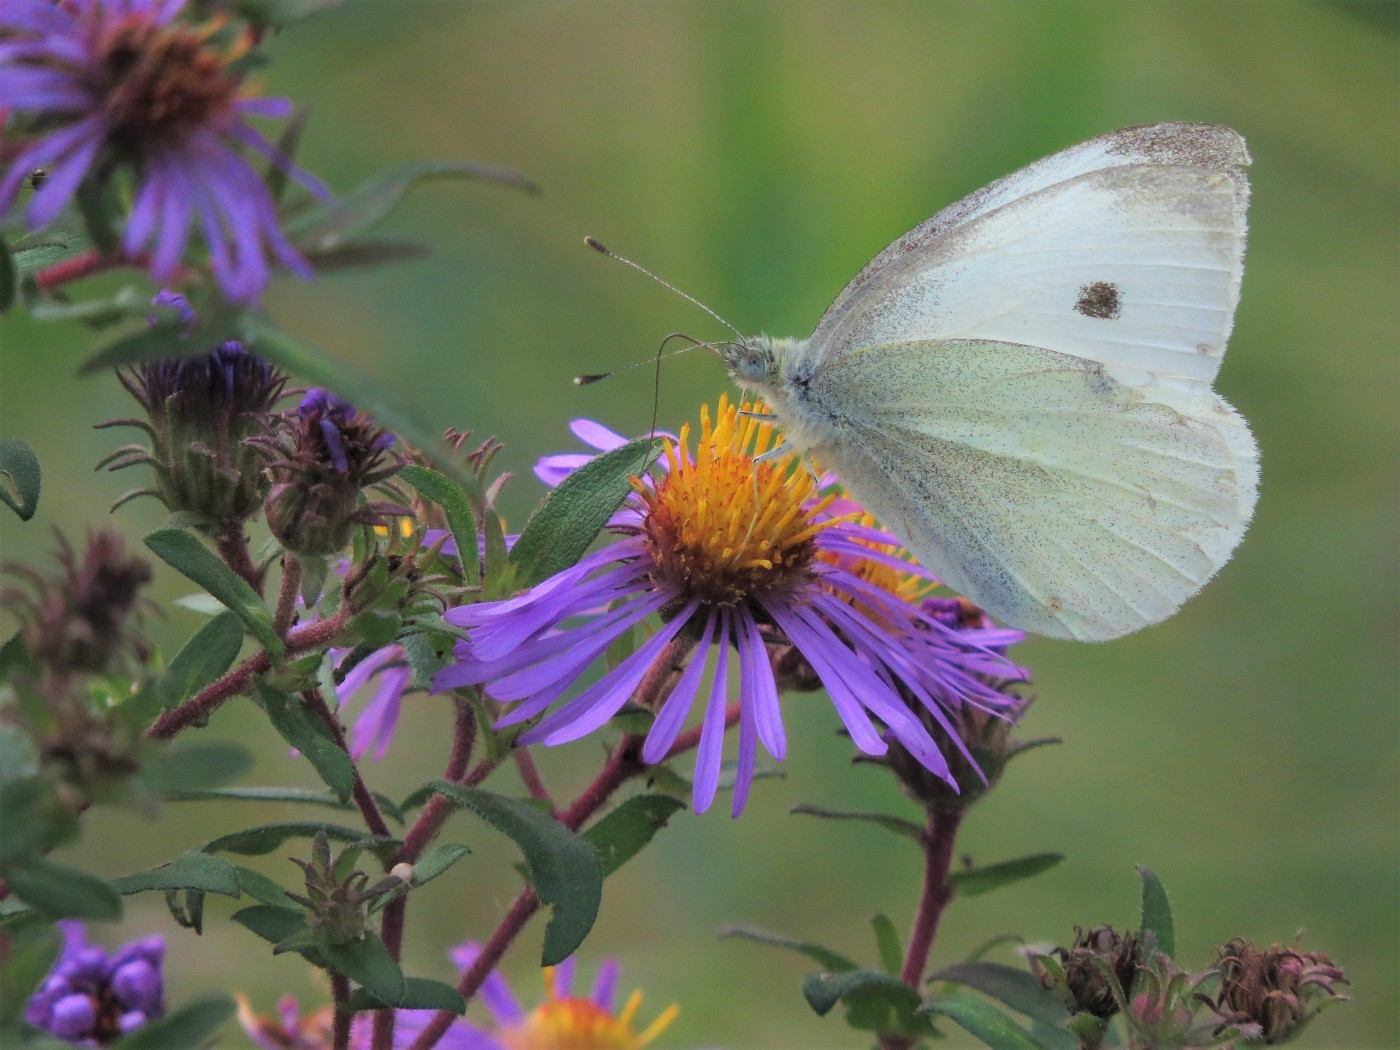 A white cabbage butterfly sipping nectar from a purple aster.